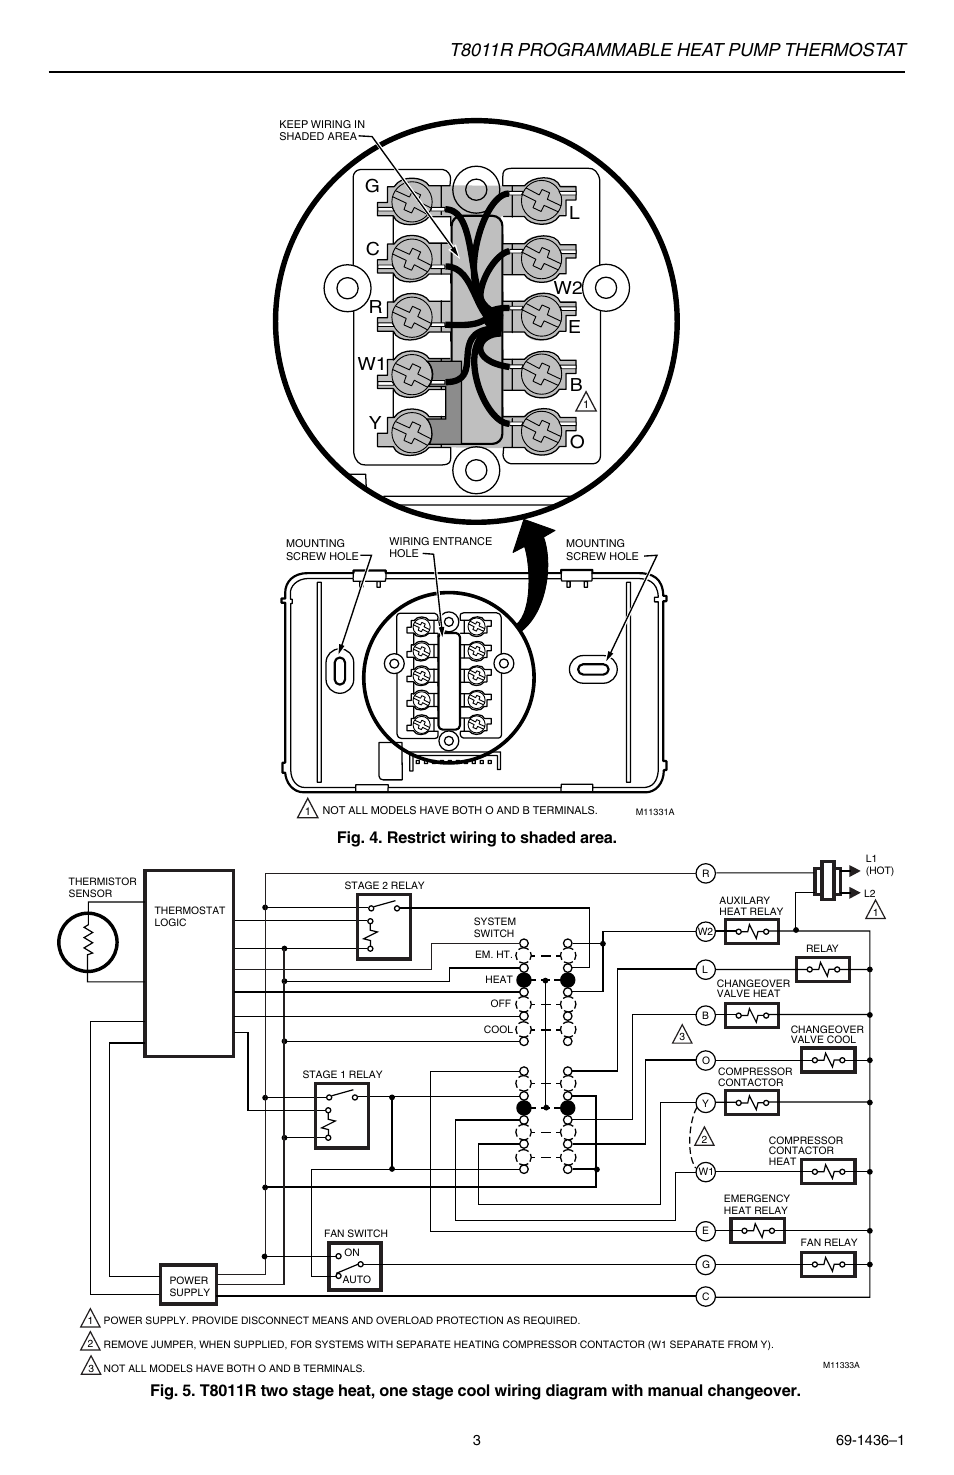 change over contactor wiring diagram